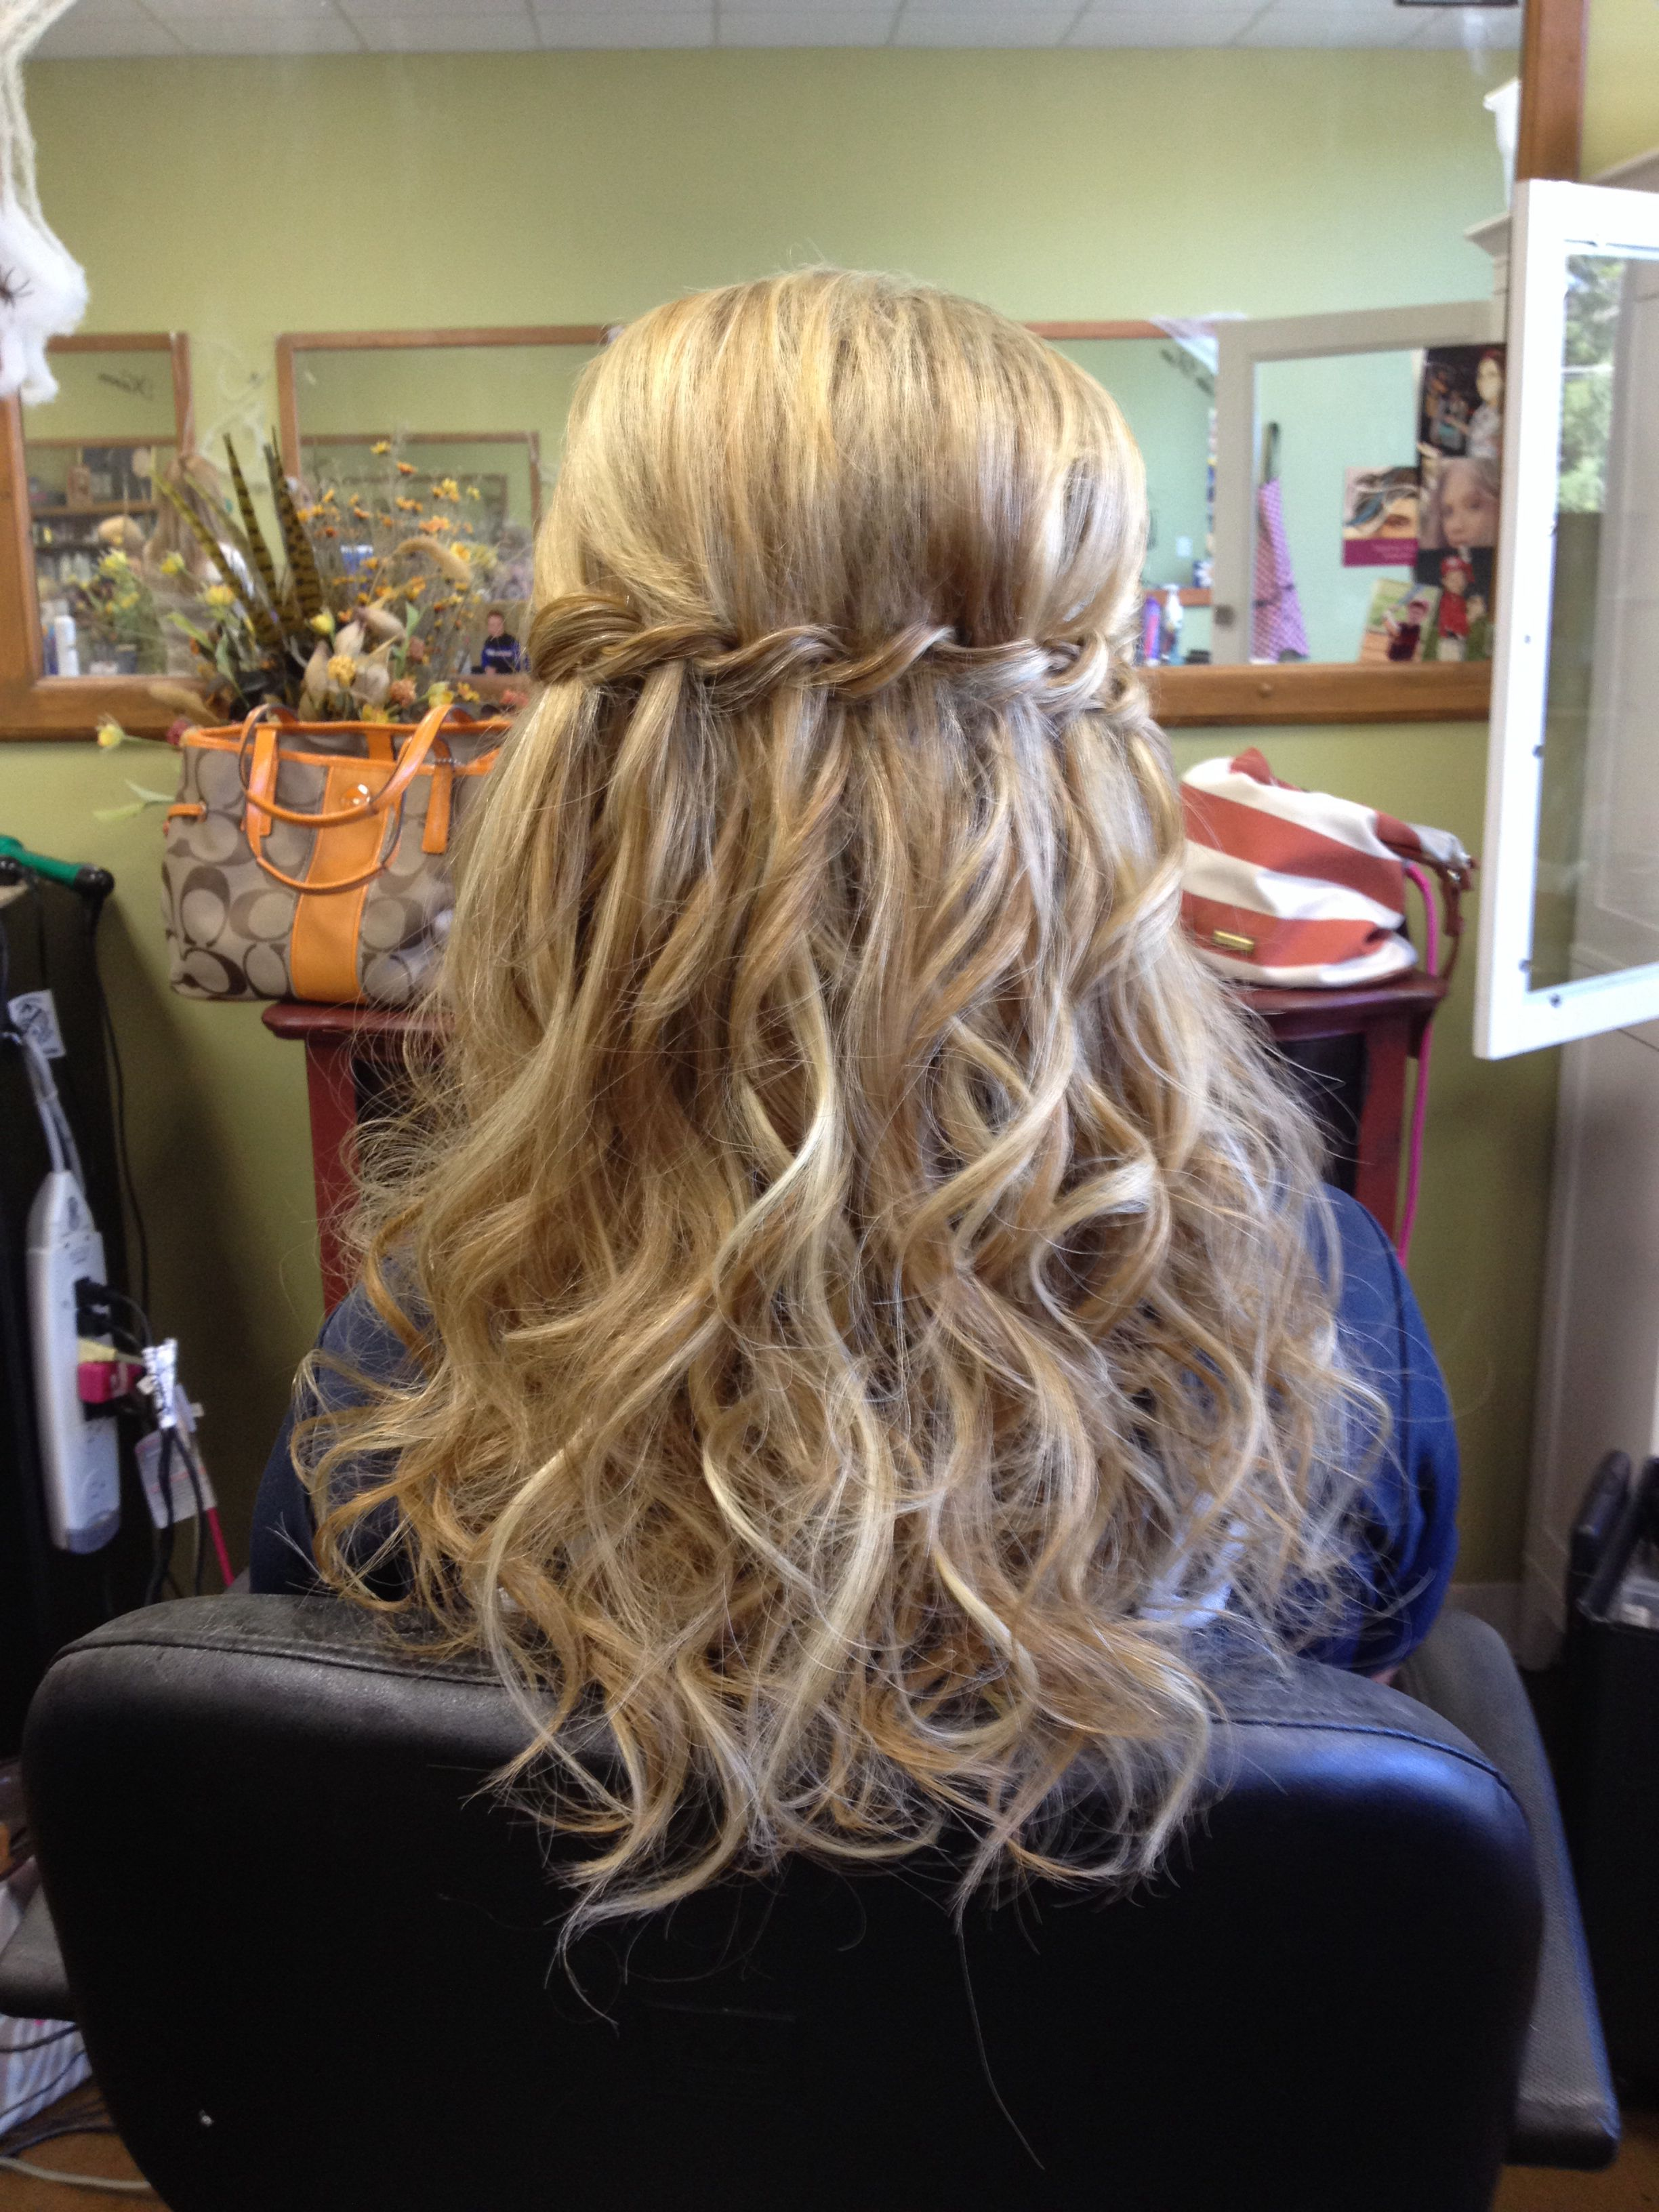 Pin Op Hair By Hairby J Smith